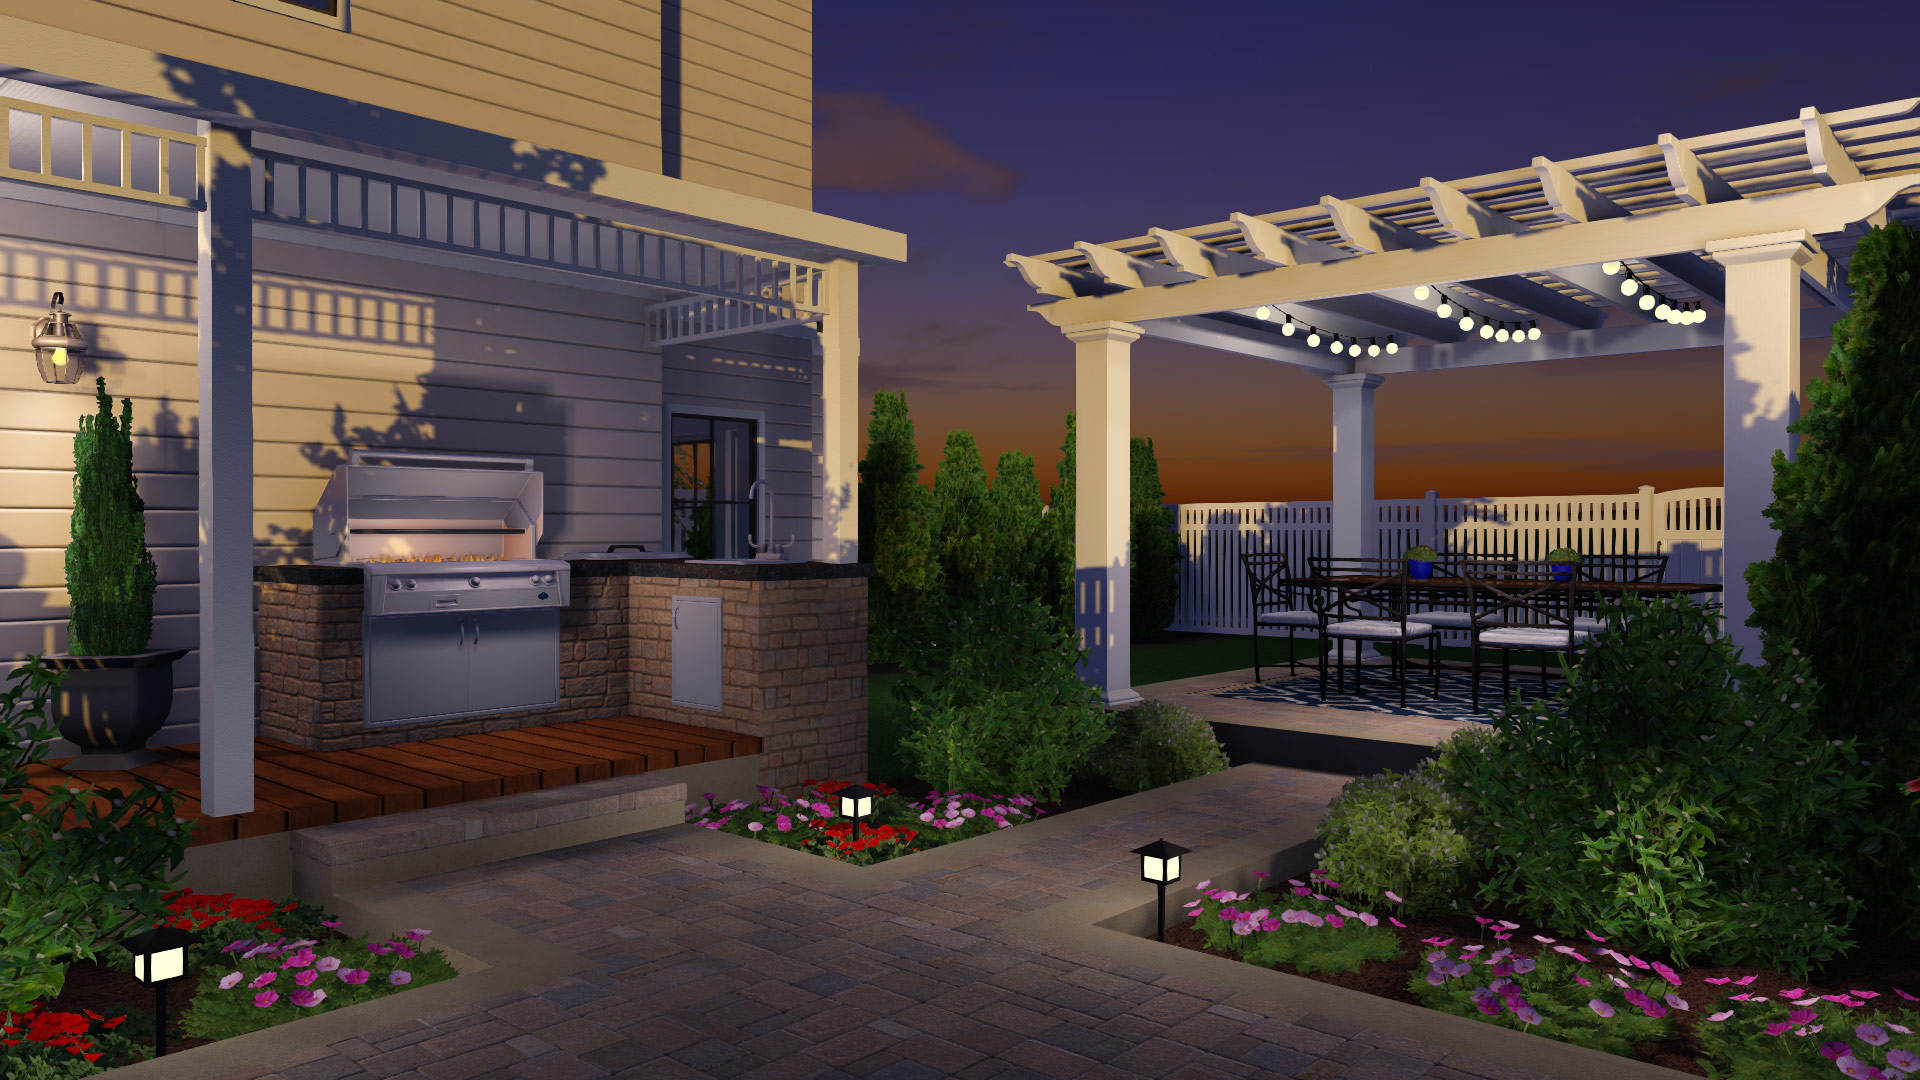 Incorporate Add-ons Into the Pergola